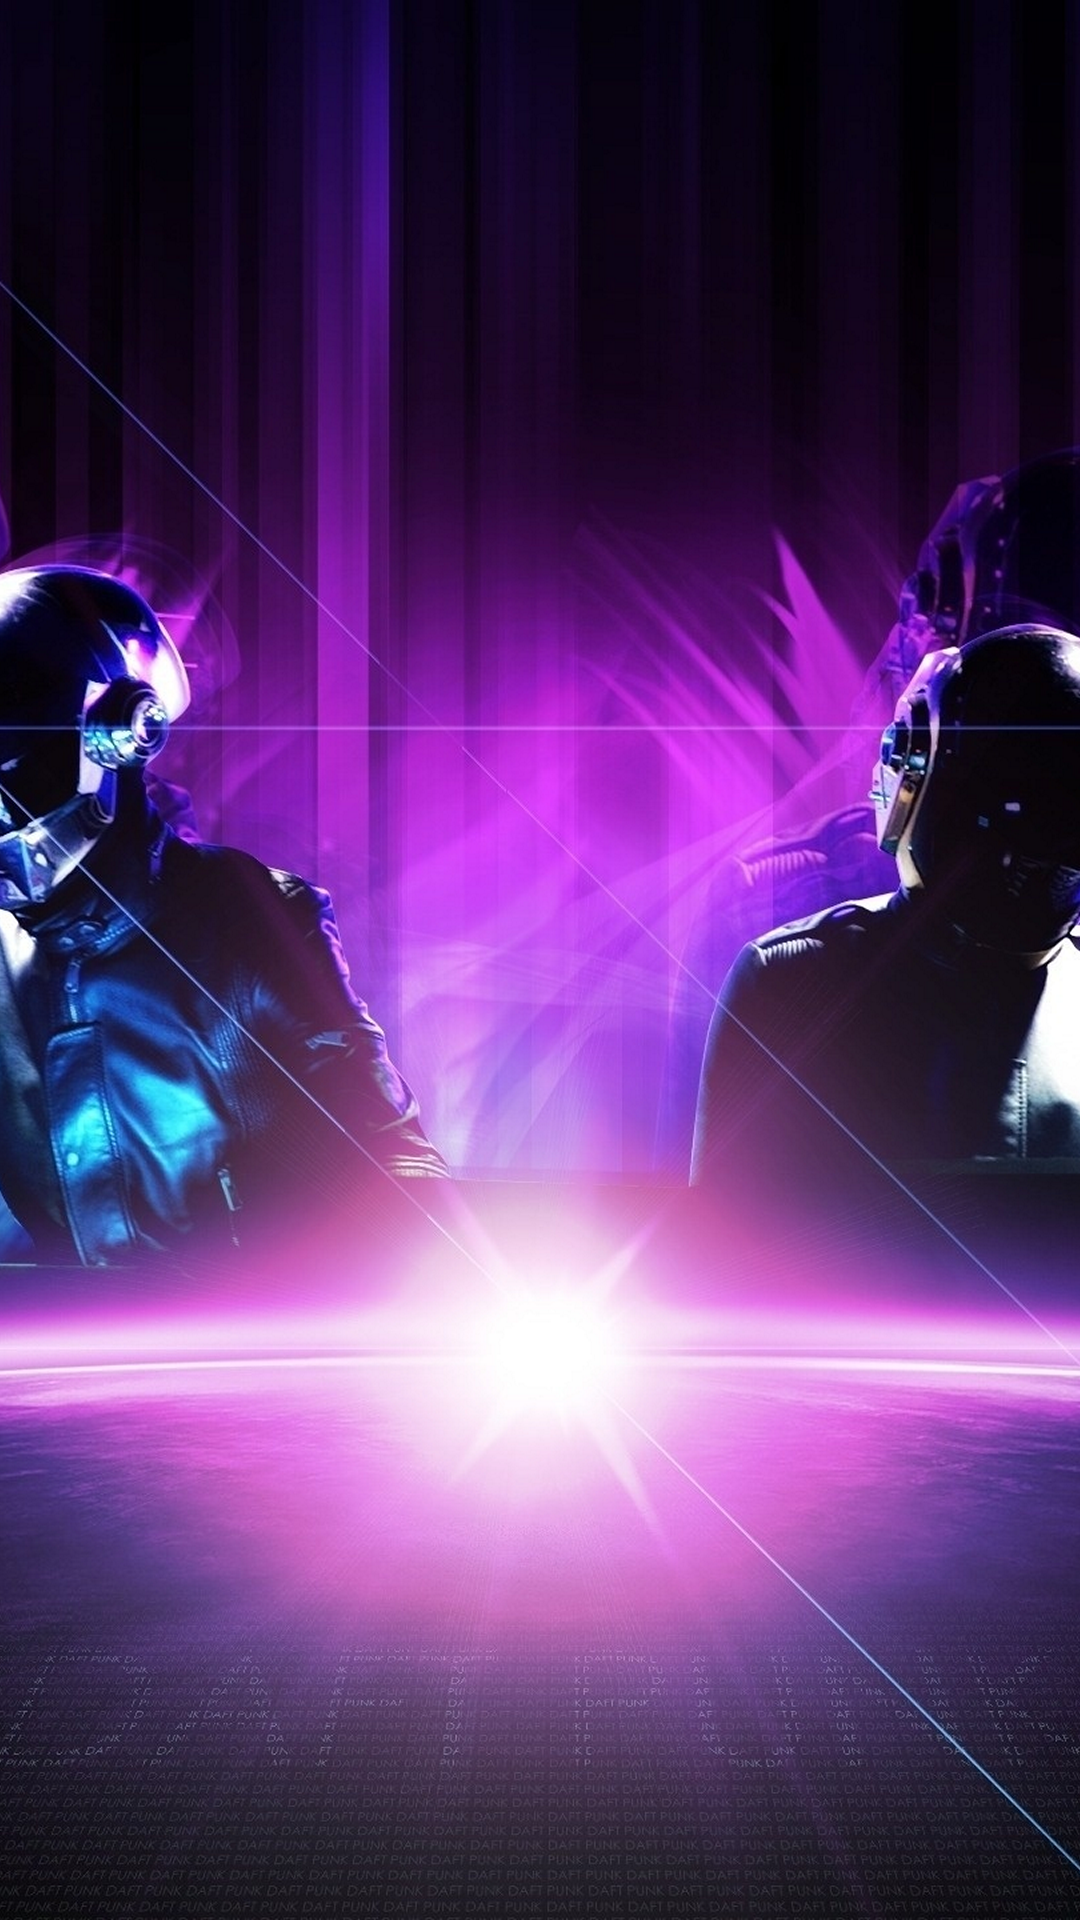 Wallpaper for galaxy s4 with daft punk with purple tone in 1080x1920 1080x1920